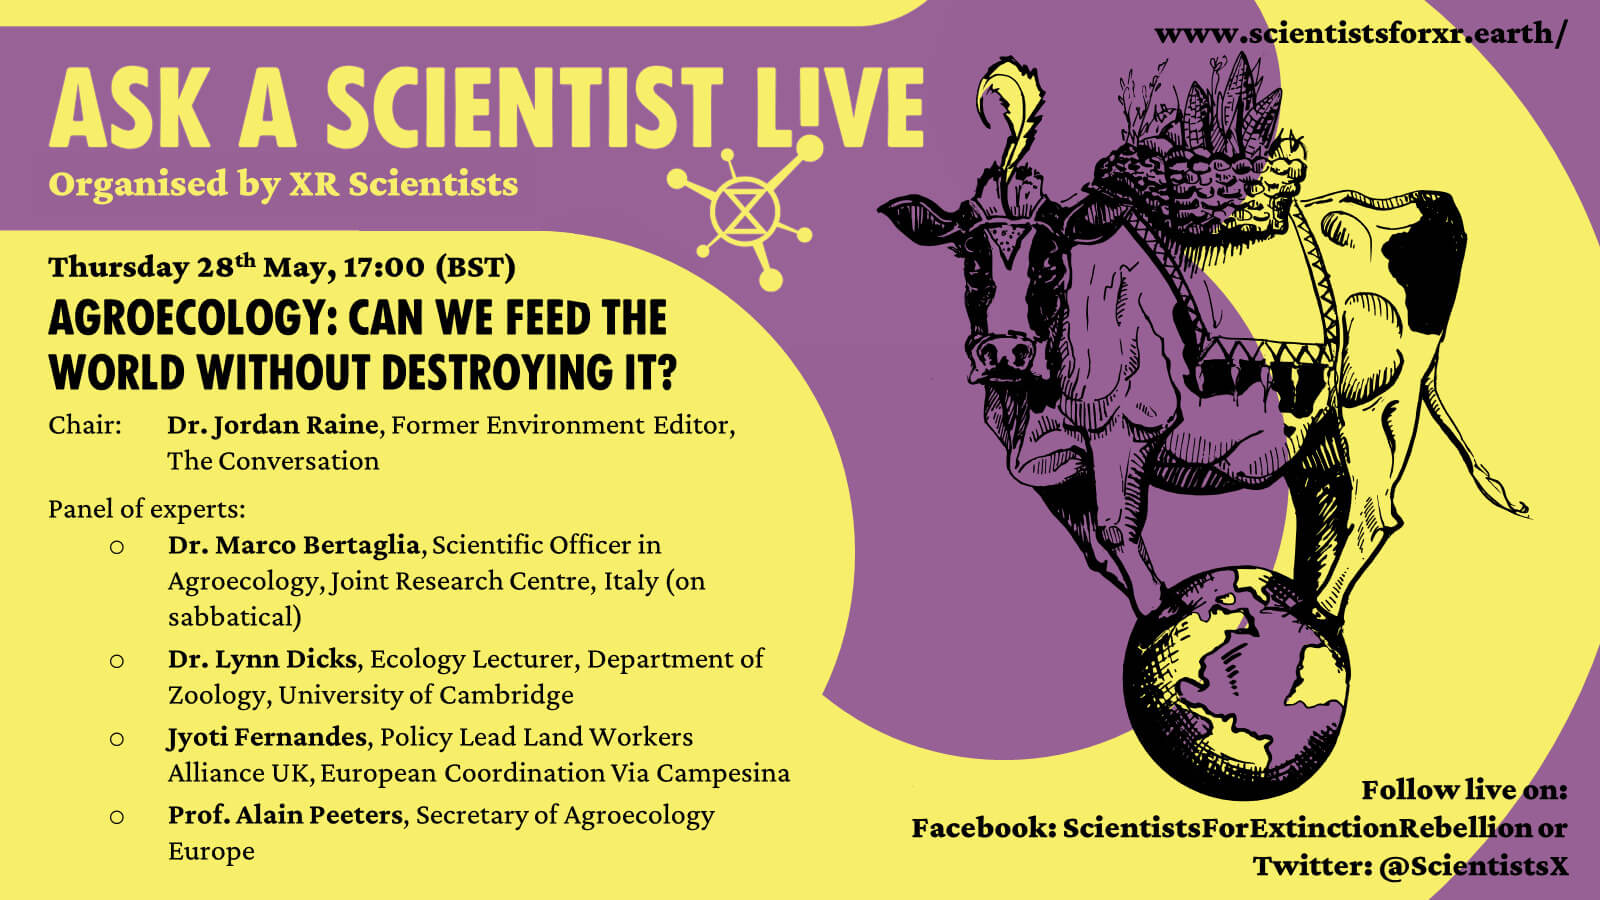 XR Ask a Scientist Live flyer